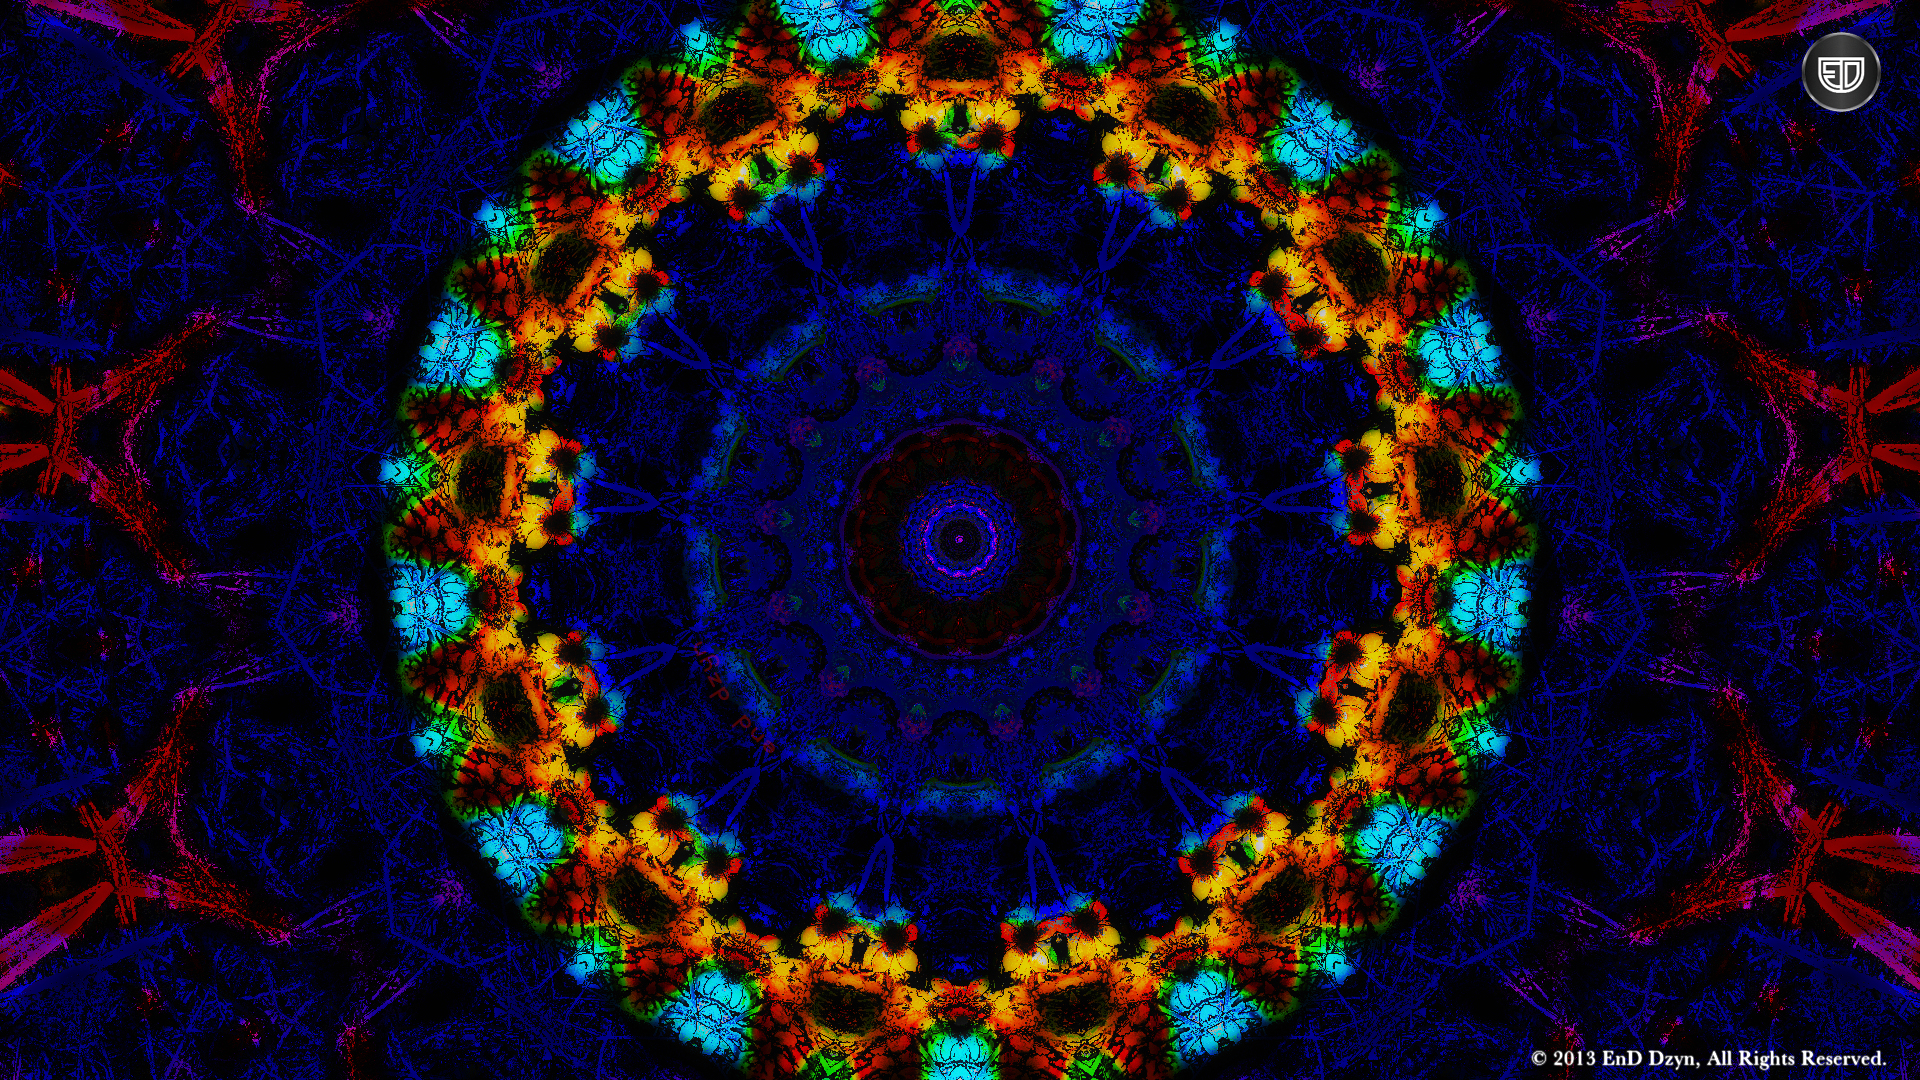 HD Background Wallpaper Red Blue Trippy 3D Psychedelic HD 1920x1080